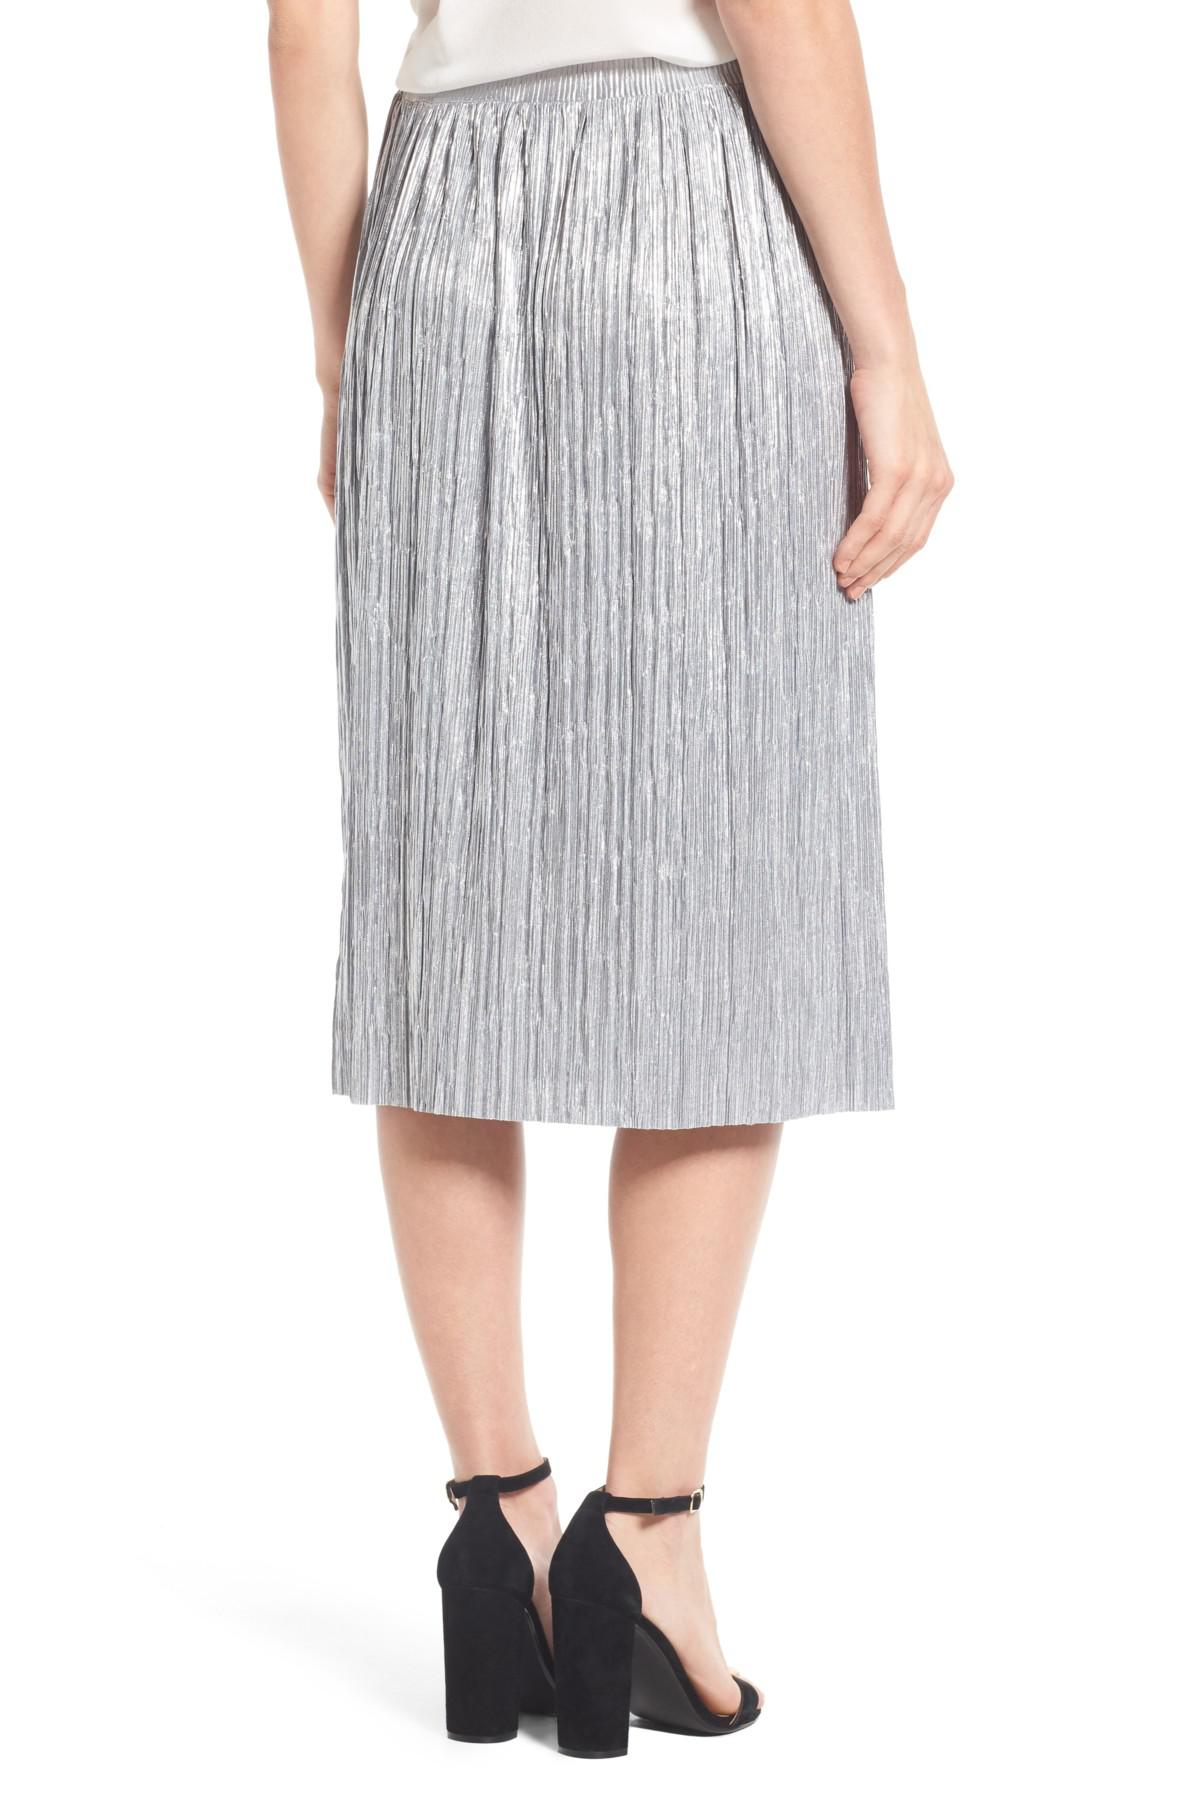 83123a8645 Vince Camuto Pleat Foiled Knit Skirt in Metallic - Lyst